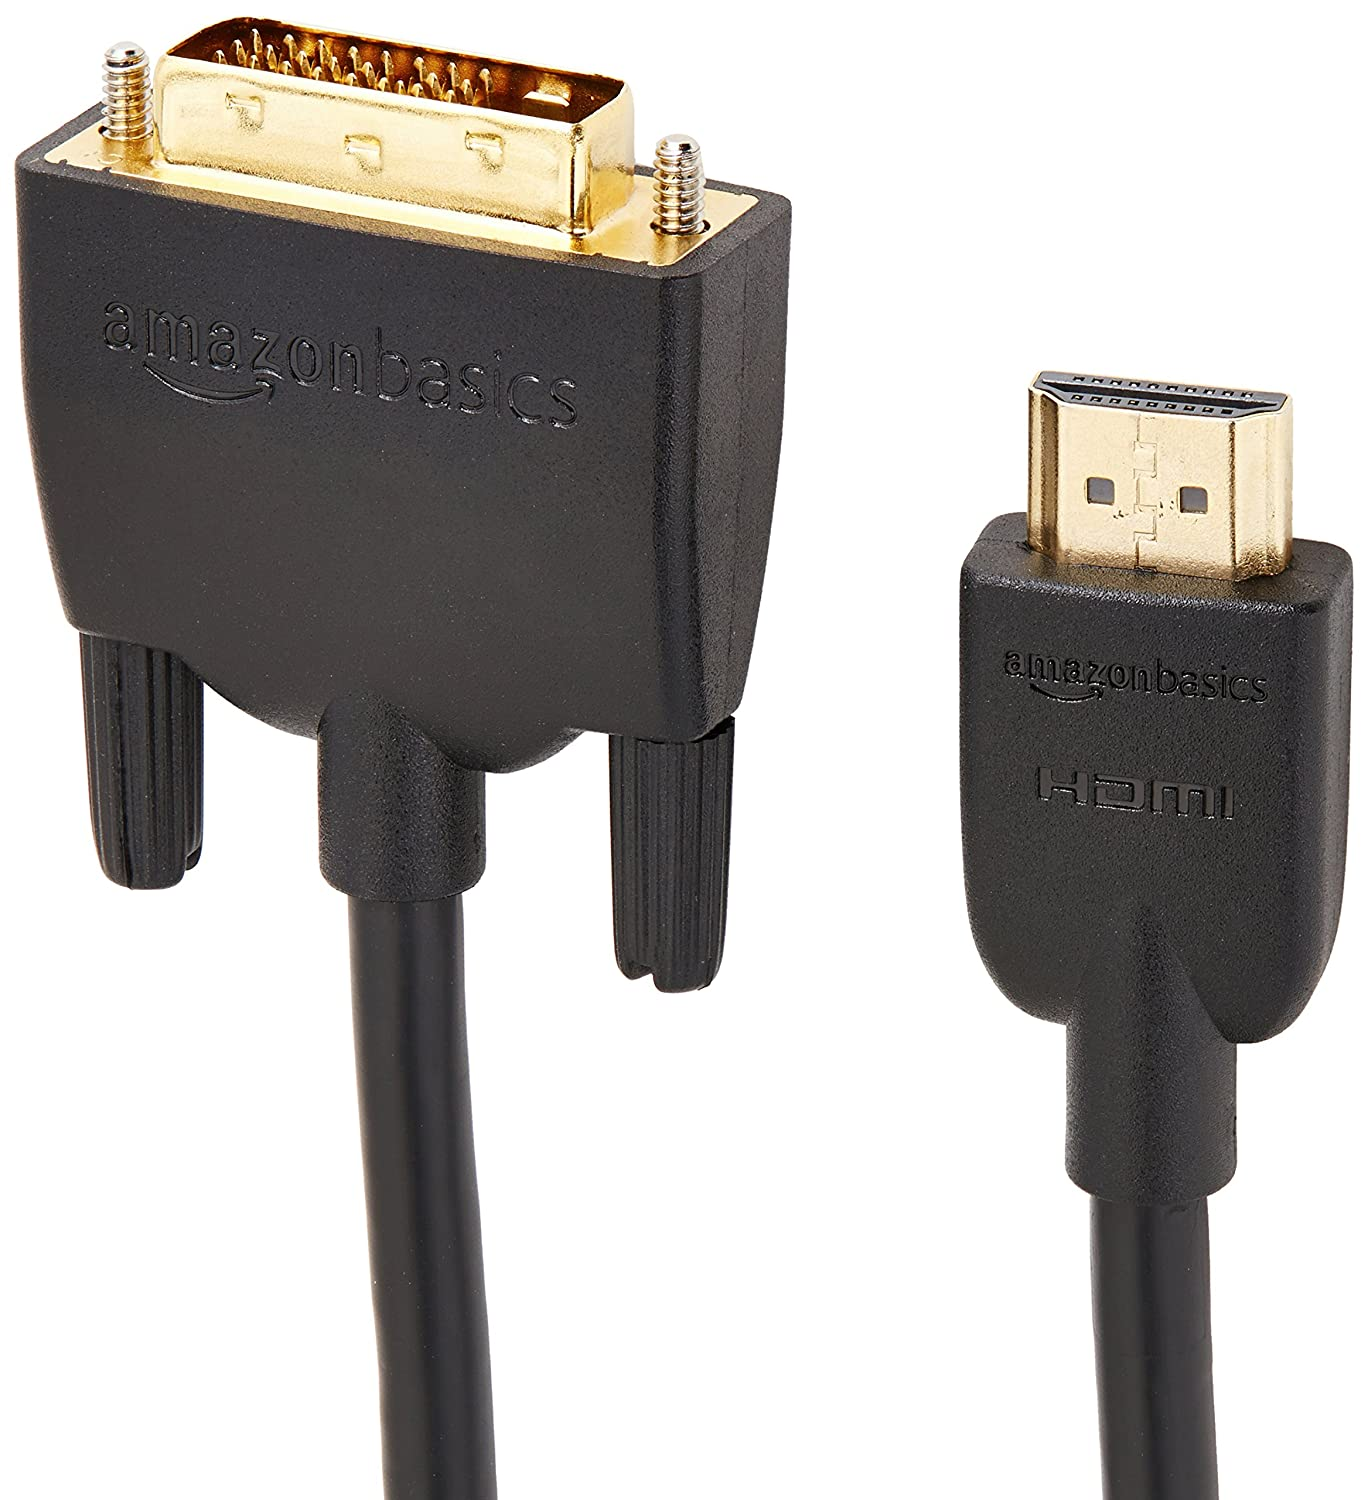 Basics DVI to HDMI Adapter Cable Not for connecting to SCART or VGA ports - 1.83m Latest Standard